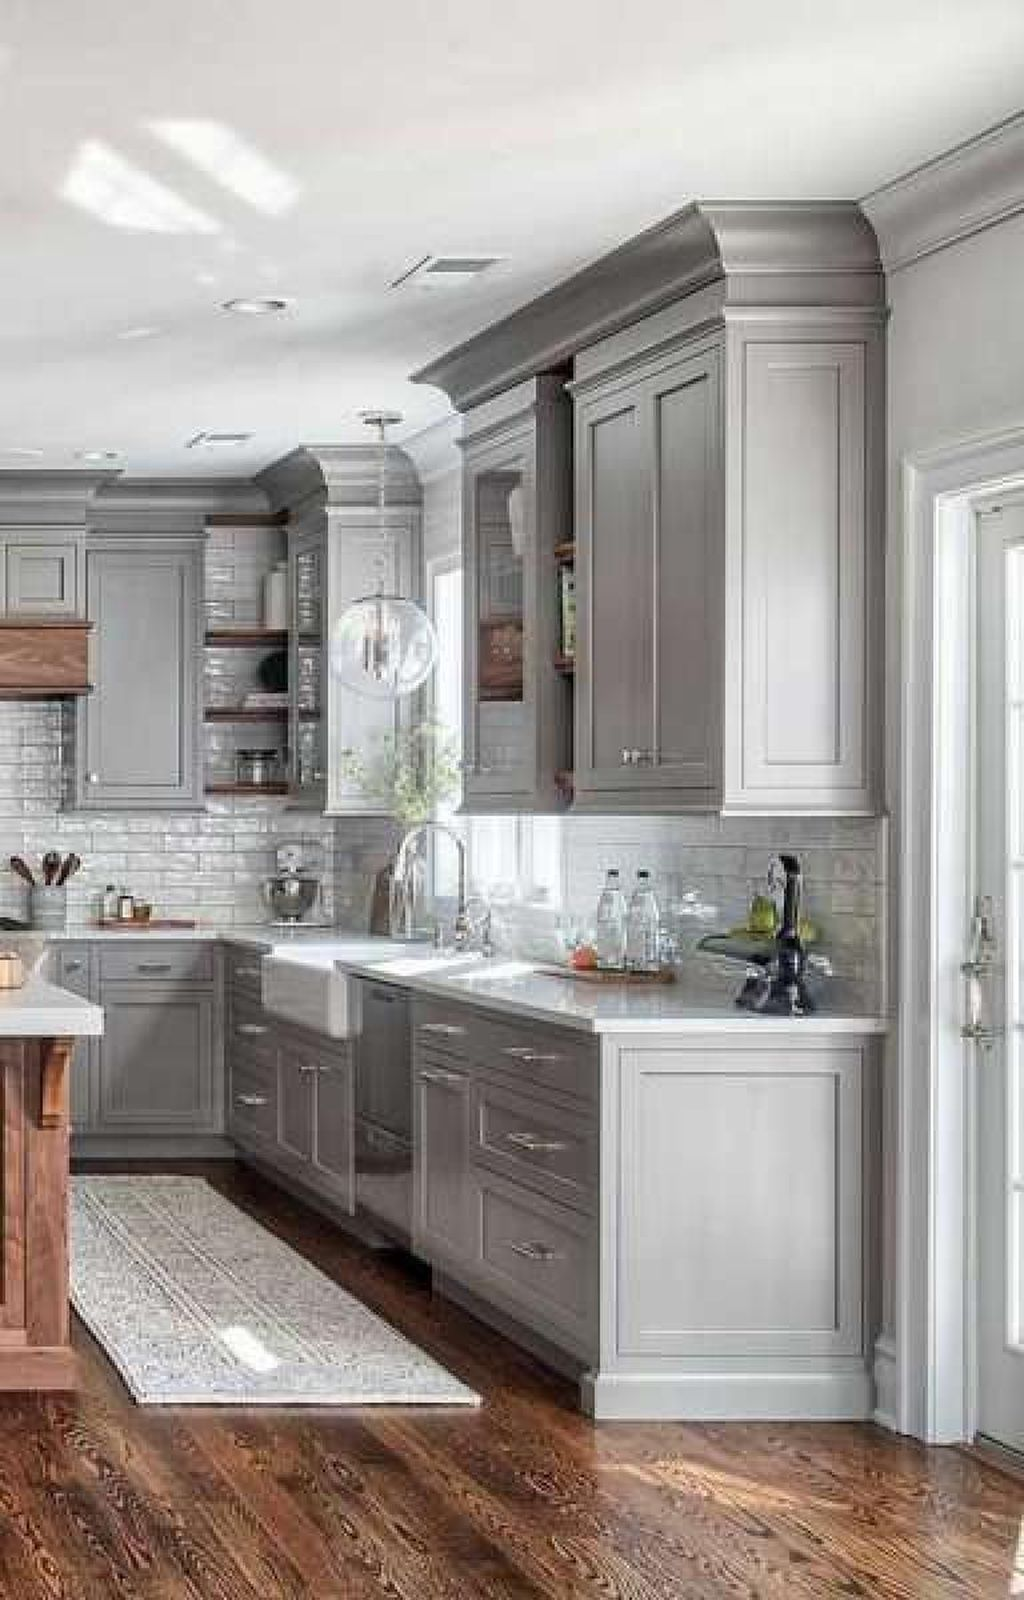 Nice 39 Creative Gray Kitchen Cabinet Ideas More At Https Homyfeed Com 2019 02 17 39 Cre Kitchen Cabinet Styles Kitchen Renovation Cost Grey Kitchen Designs